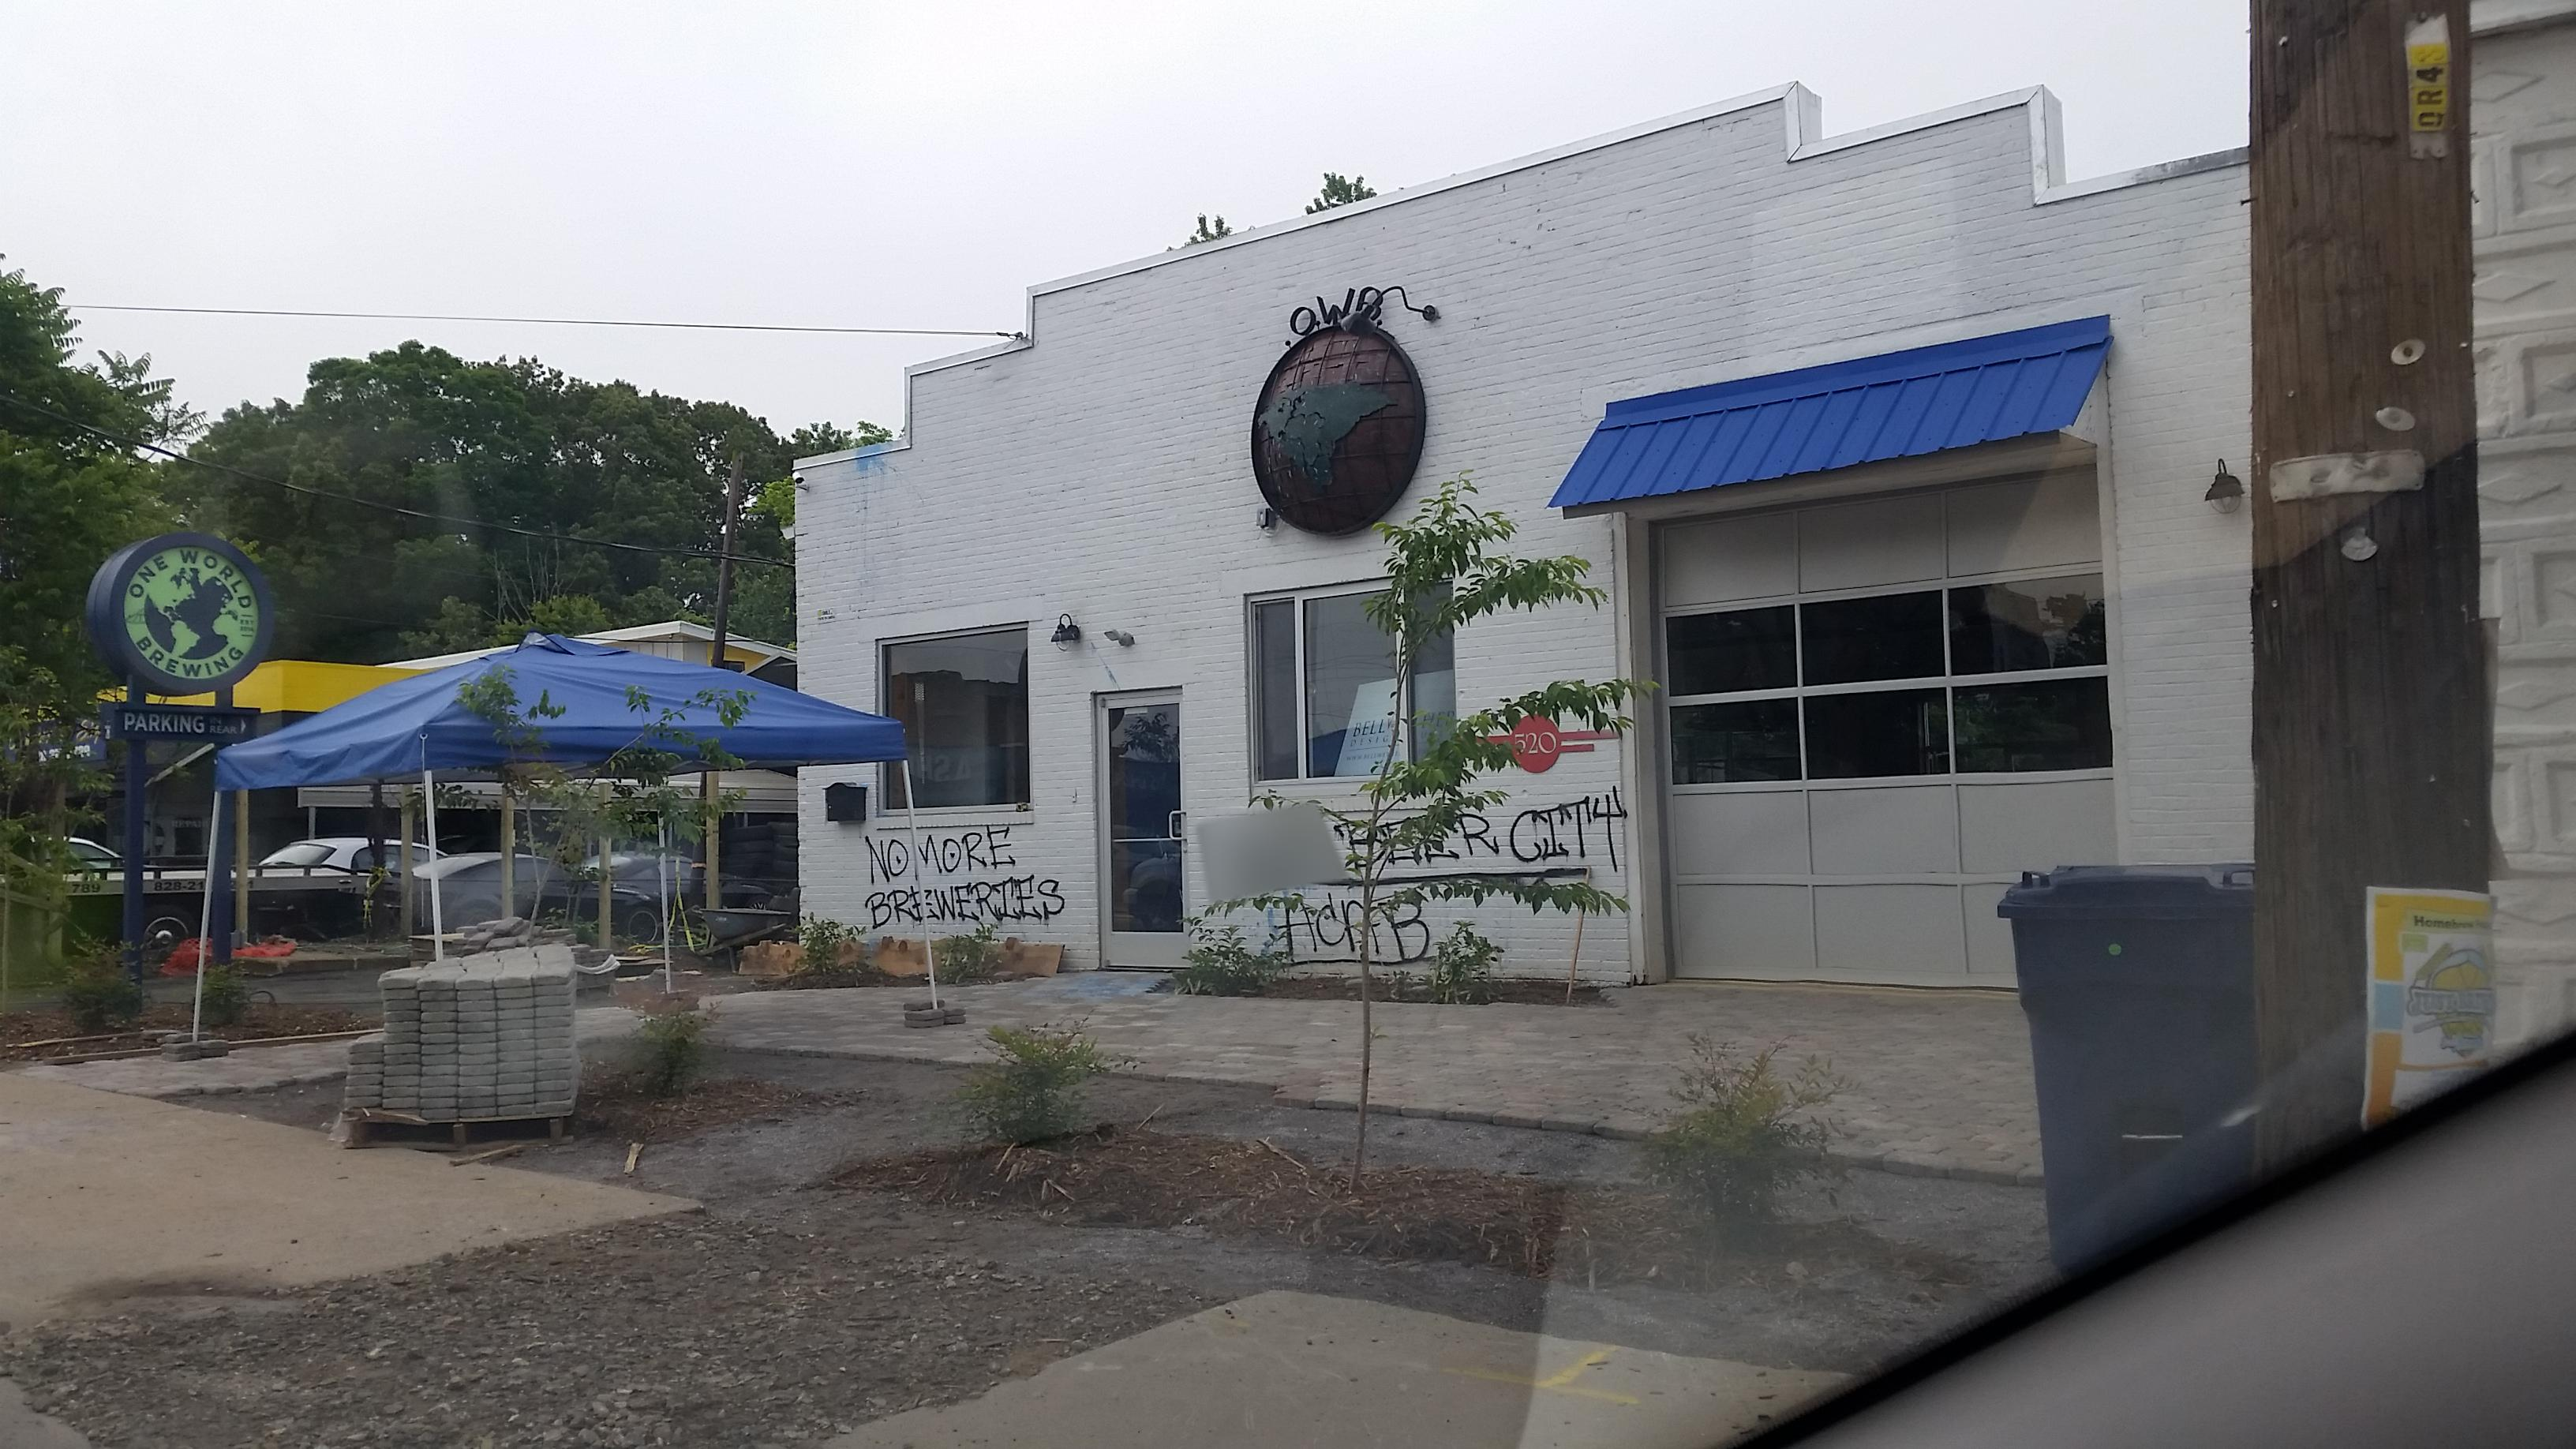 """Seen Around Asheville"" took photos of graffiti scrawled on the exterior of One World Brewing on Haywood Road on Wednesday, May 23. (Photo credit: Seen Around Asheville)"